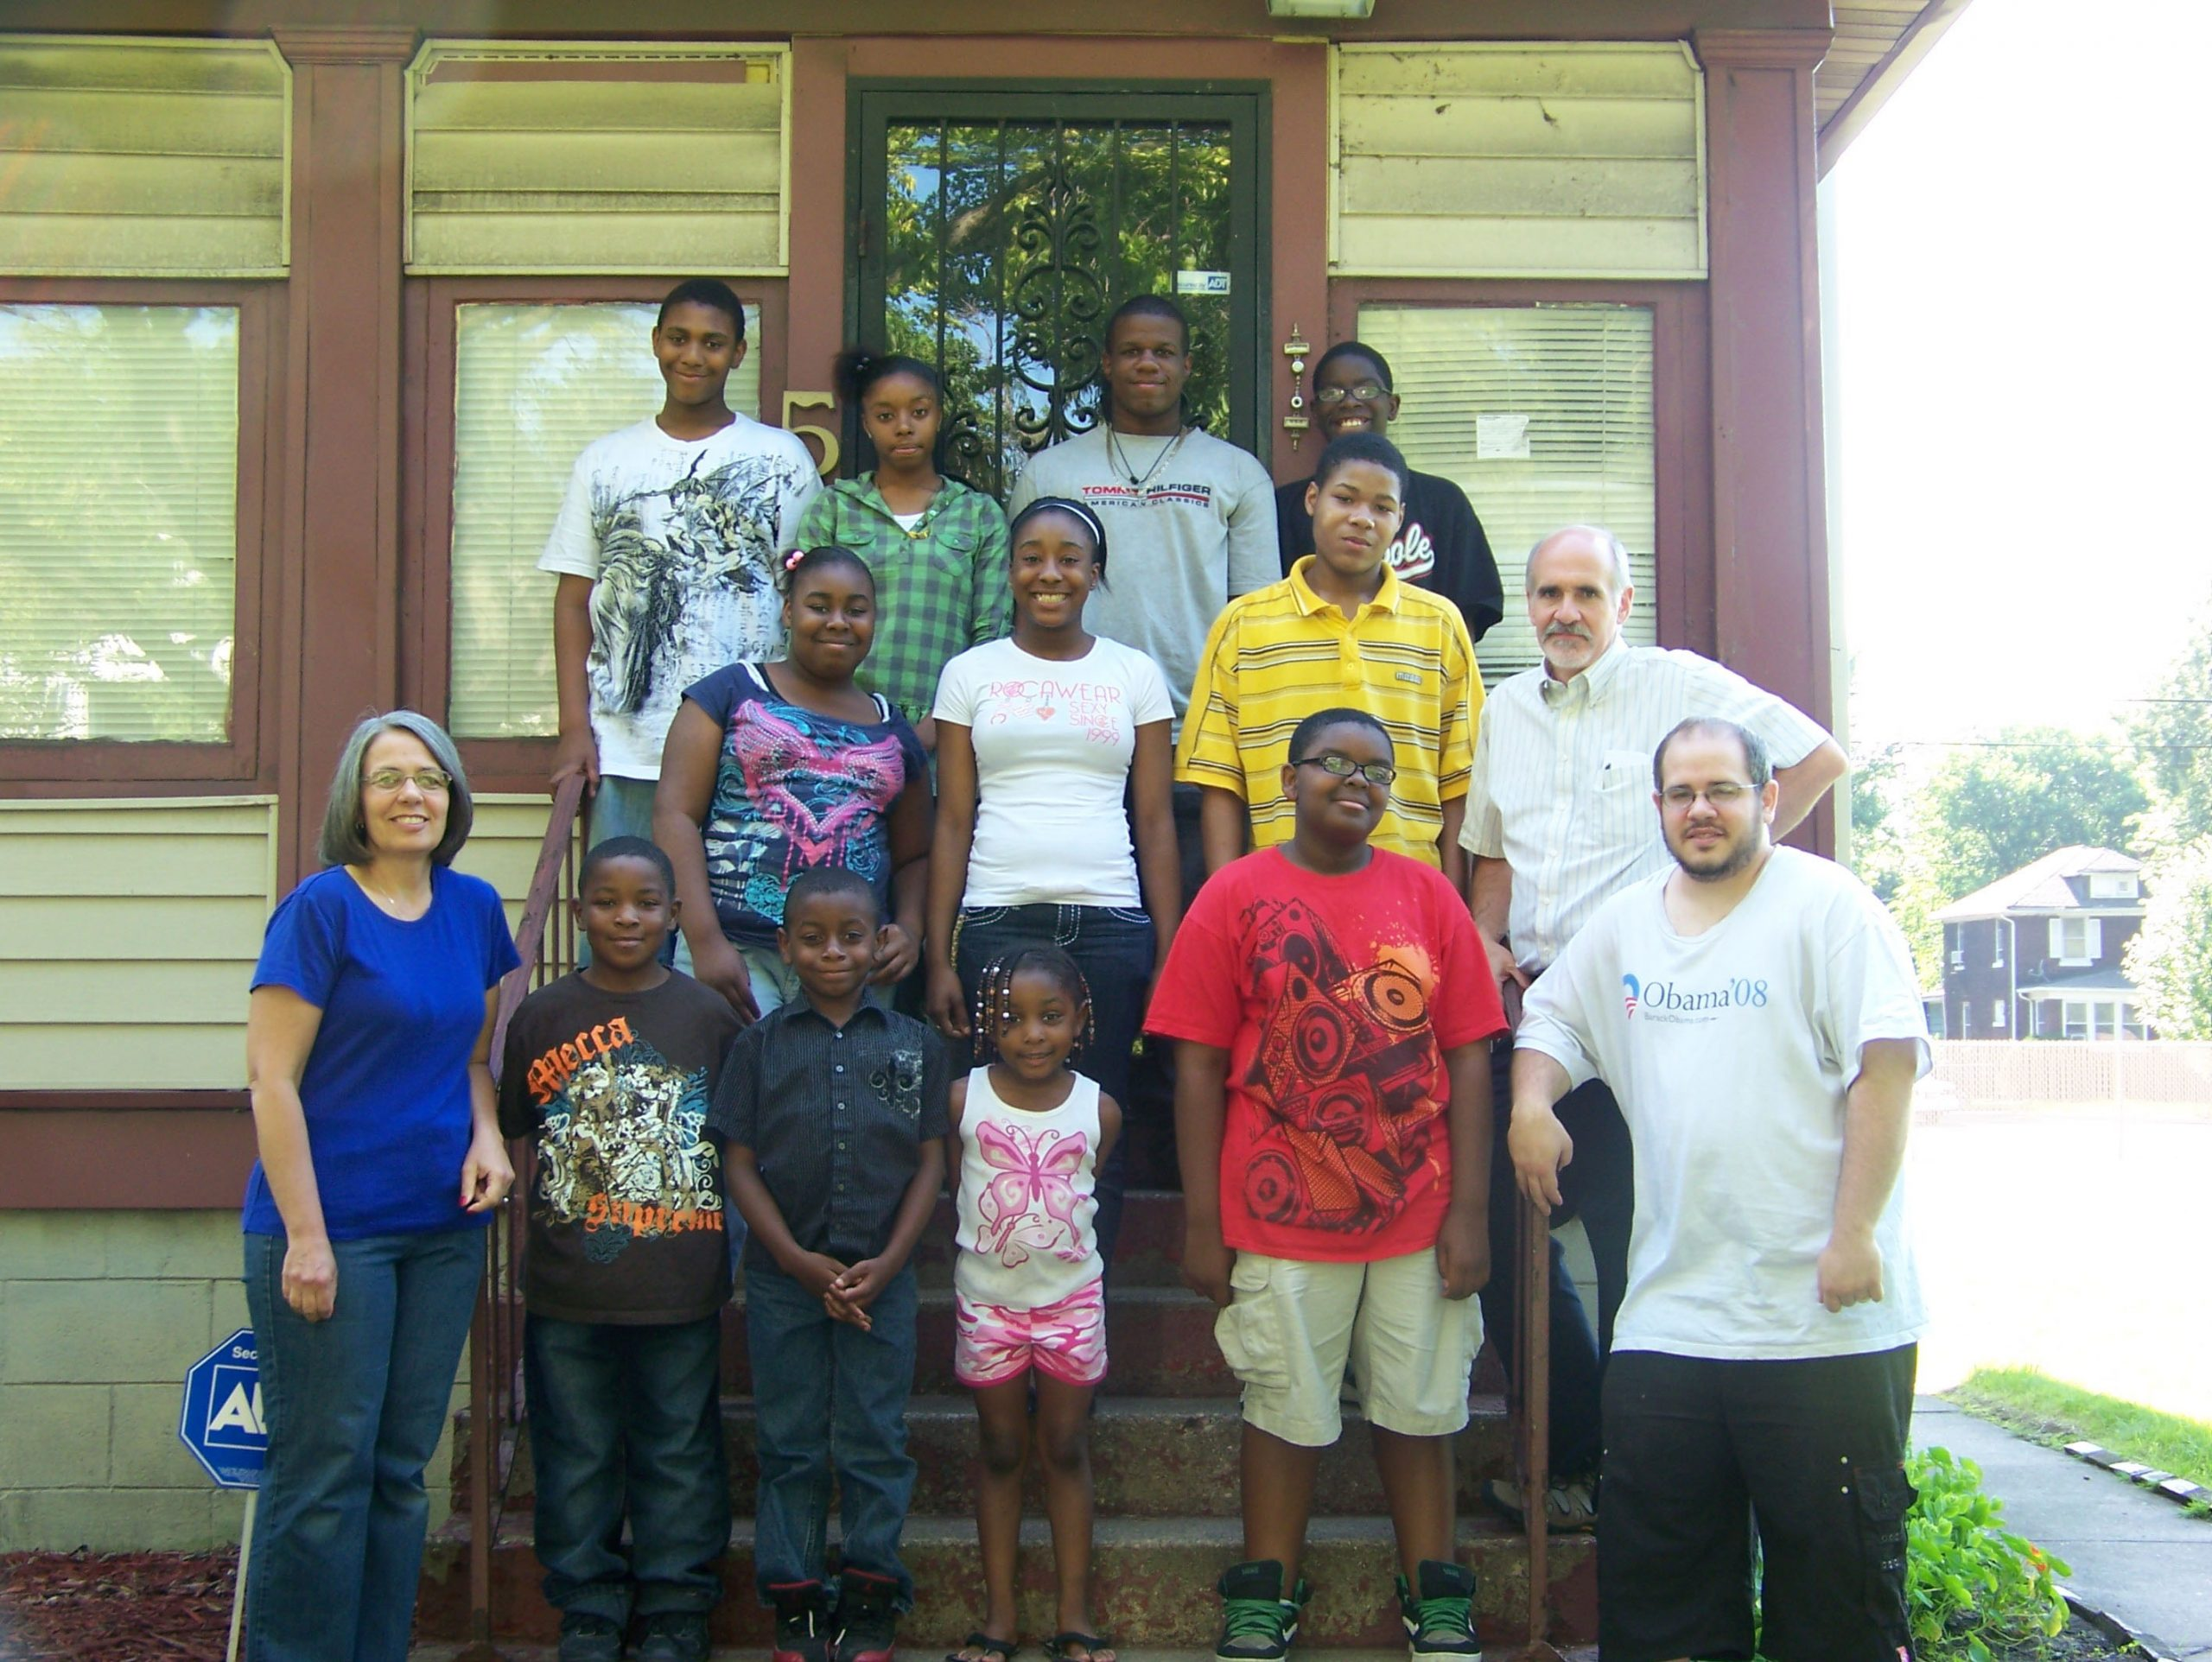 Gary and Gwen Miller with participants in their Urban Faith Works organization in front of the newly renovated center.